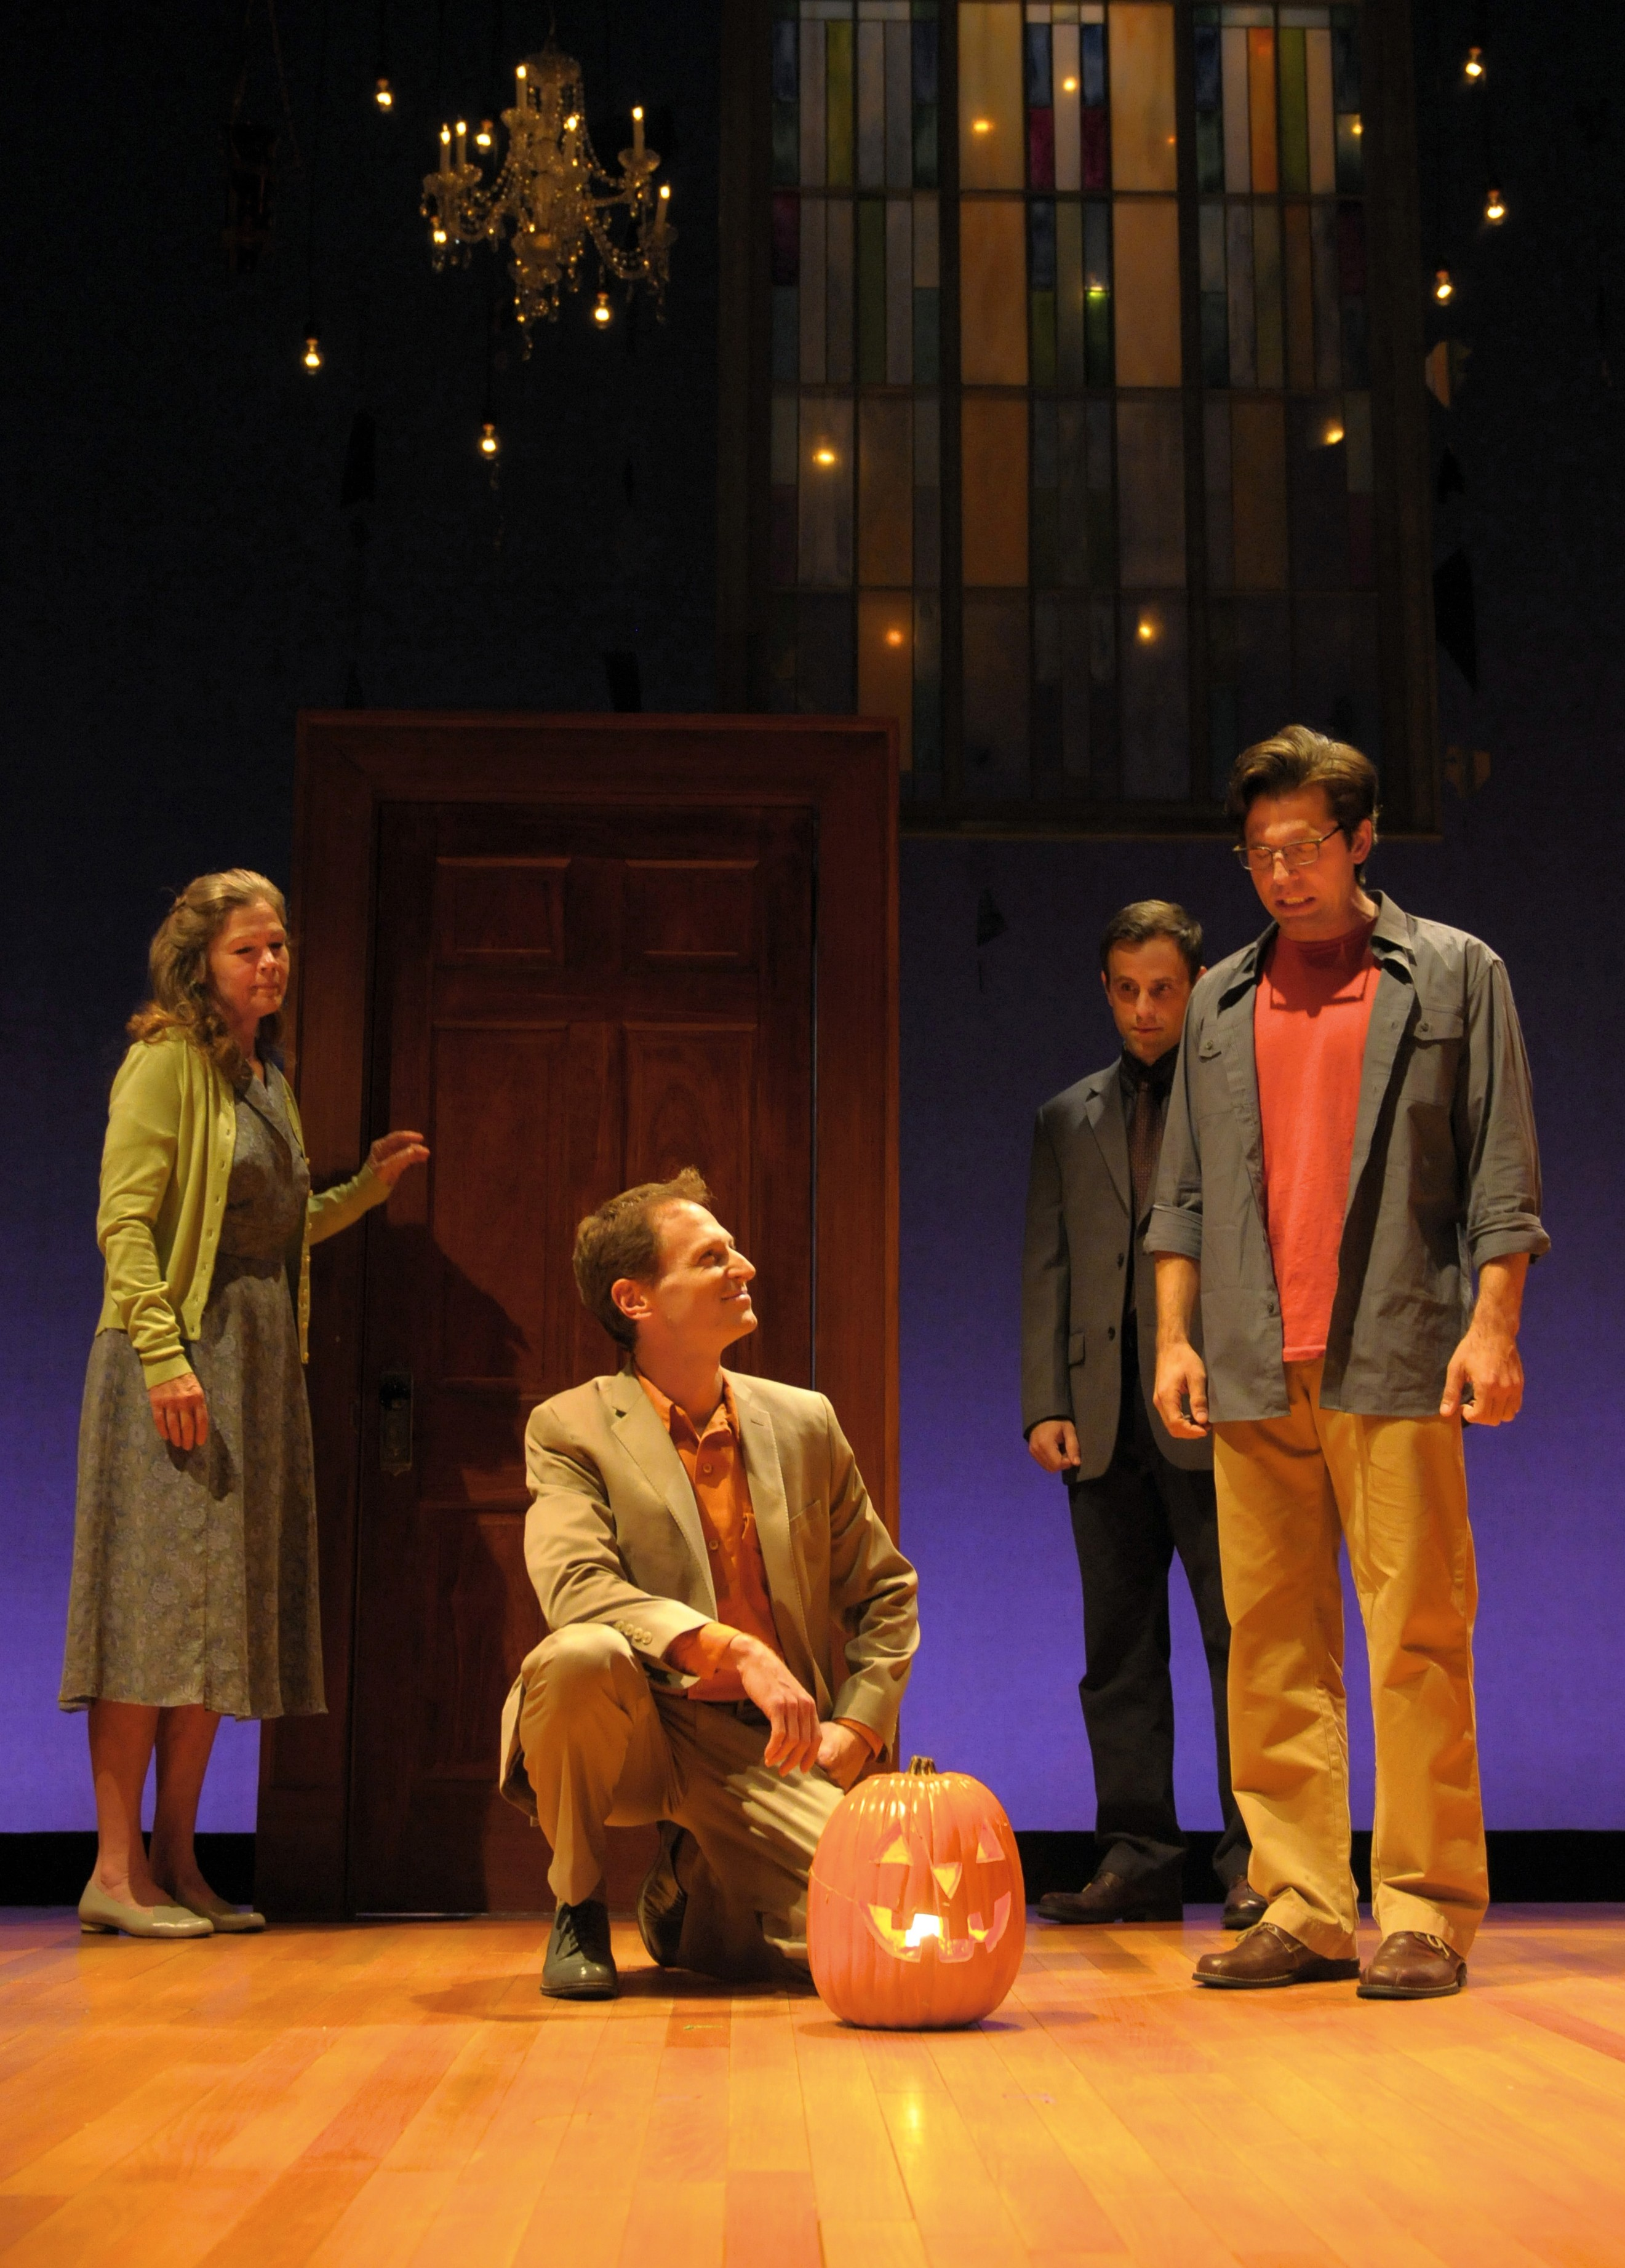 Linda Gehringer, Leo Marks, Aaron Blakeley and Tyler Pierce (left to right). Photo courtesy of kevinberne.com